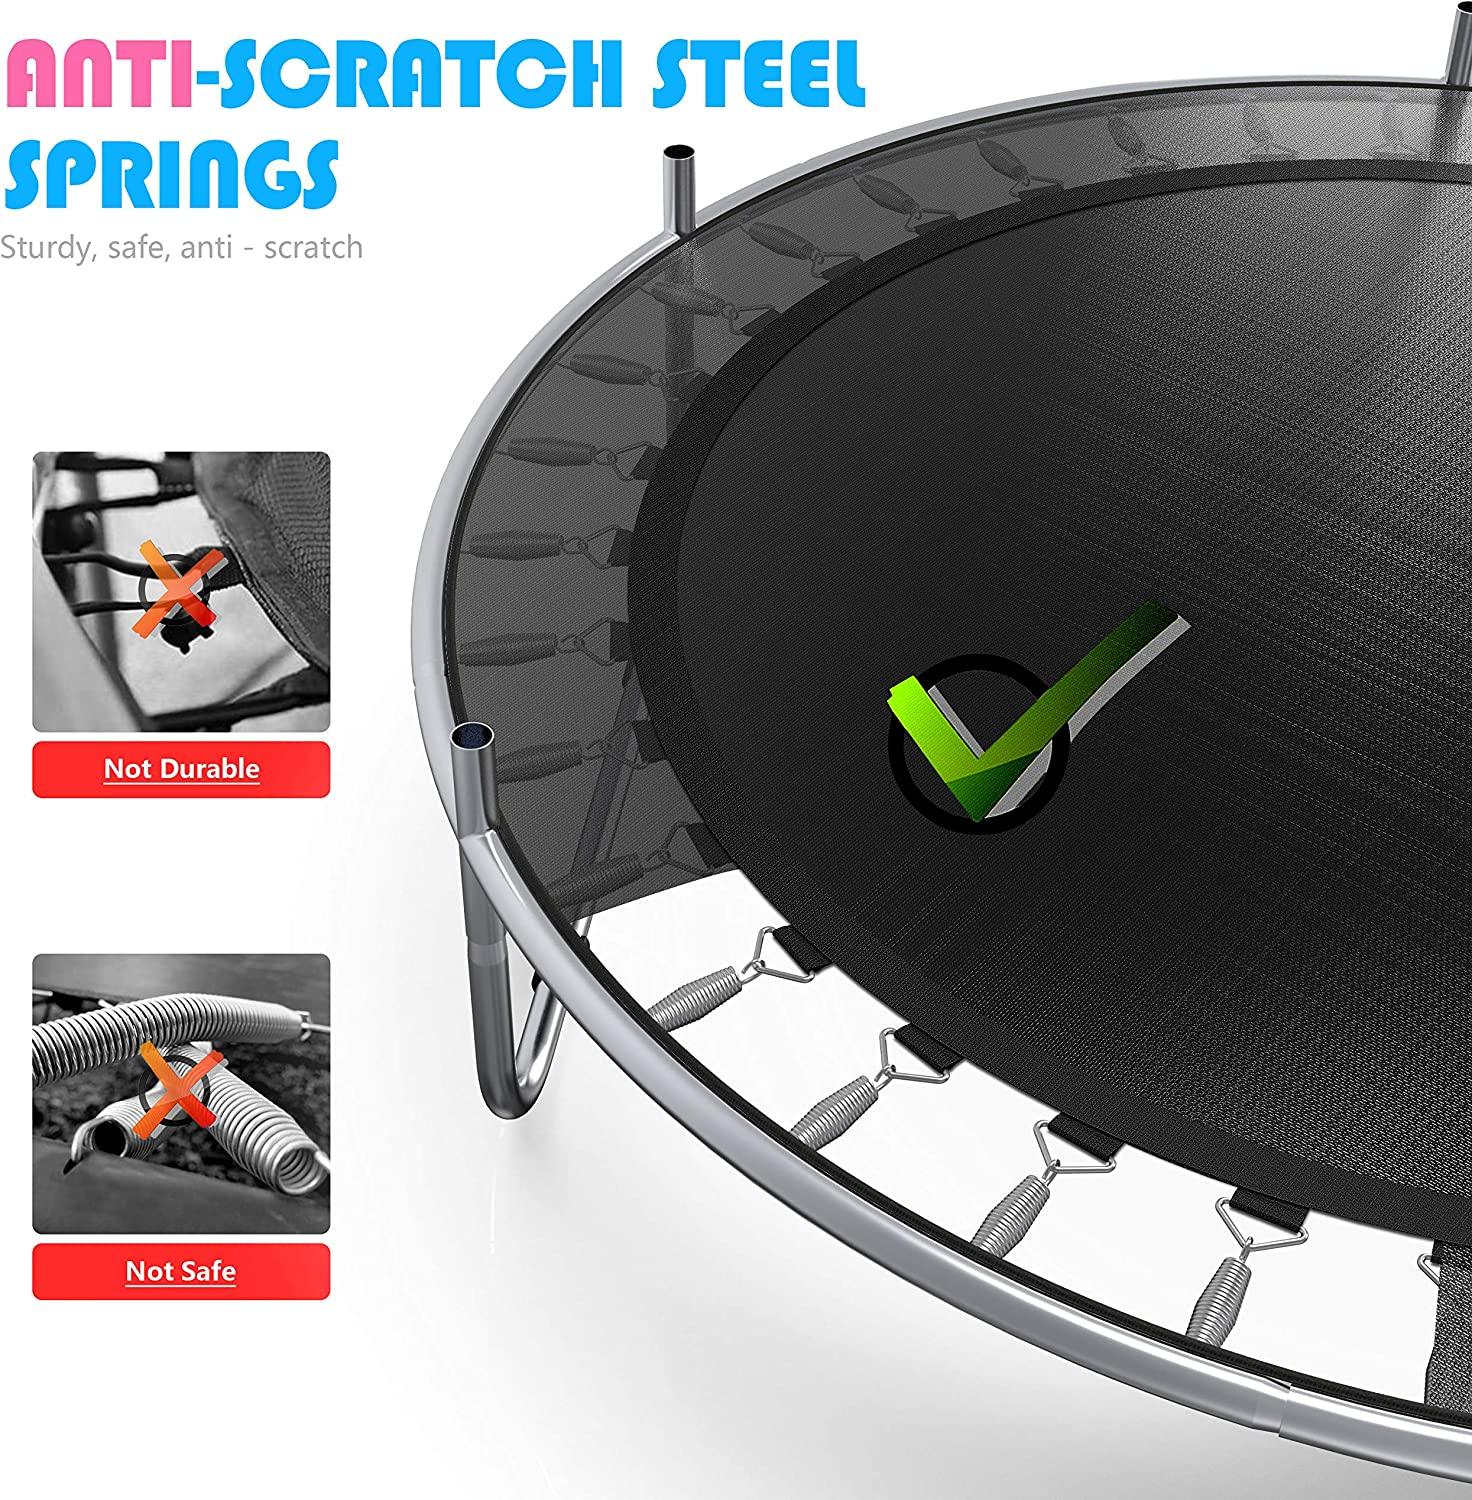 5 Ft Indoor or Outdoor Toddler Trampoline with Safety Enclosure Gifts for Boy and Girl Baby Toddler Trampoline Toys Birthday Gifts for Kids 60 Trampoline for Kids can Hold up to 442 lbs